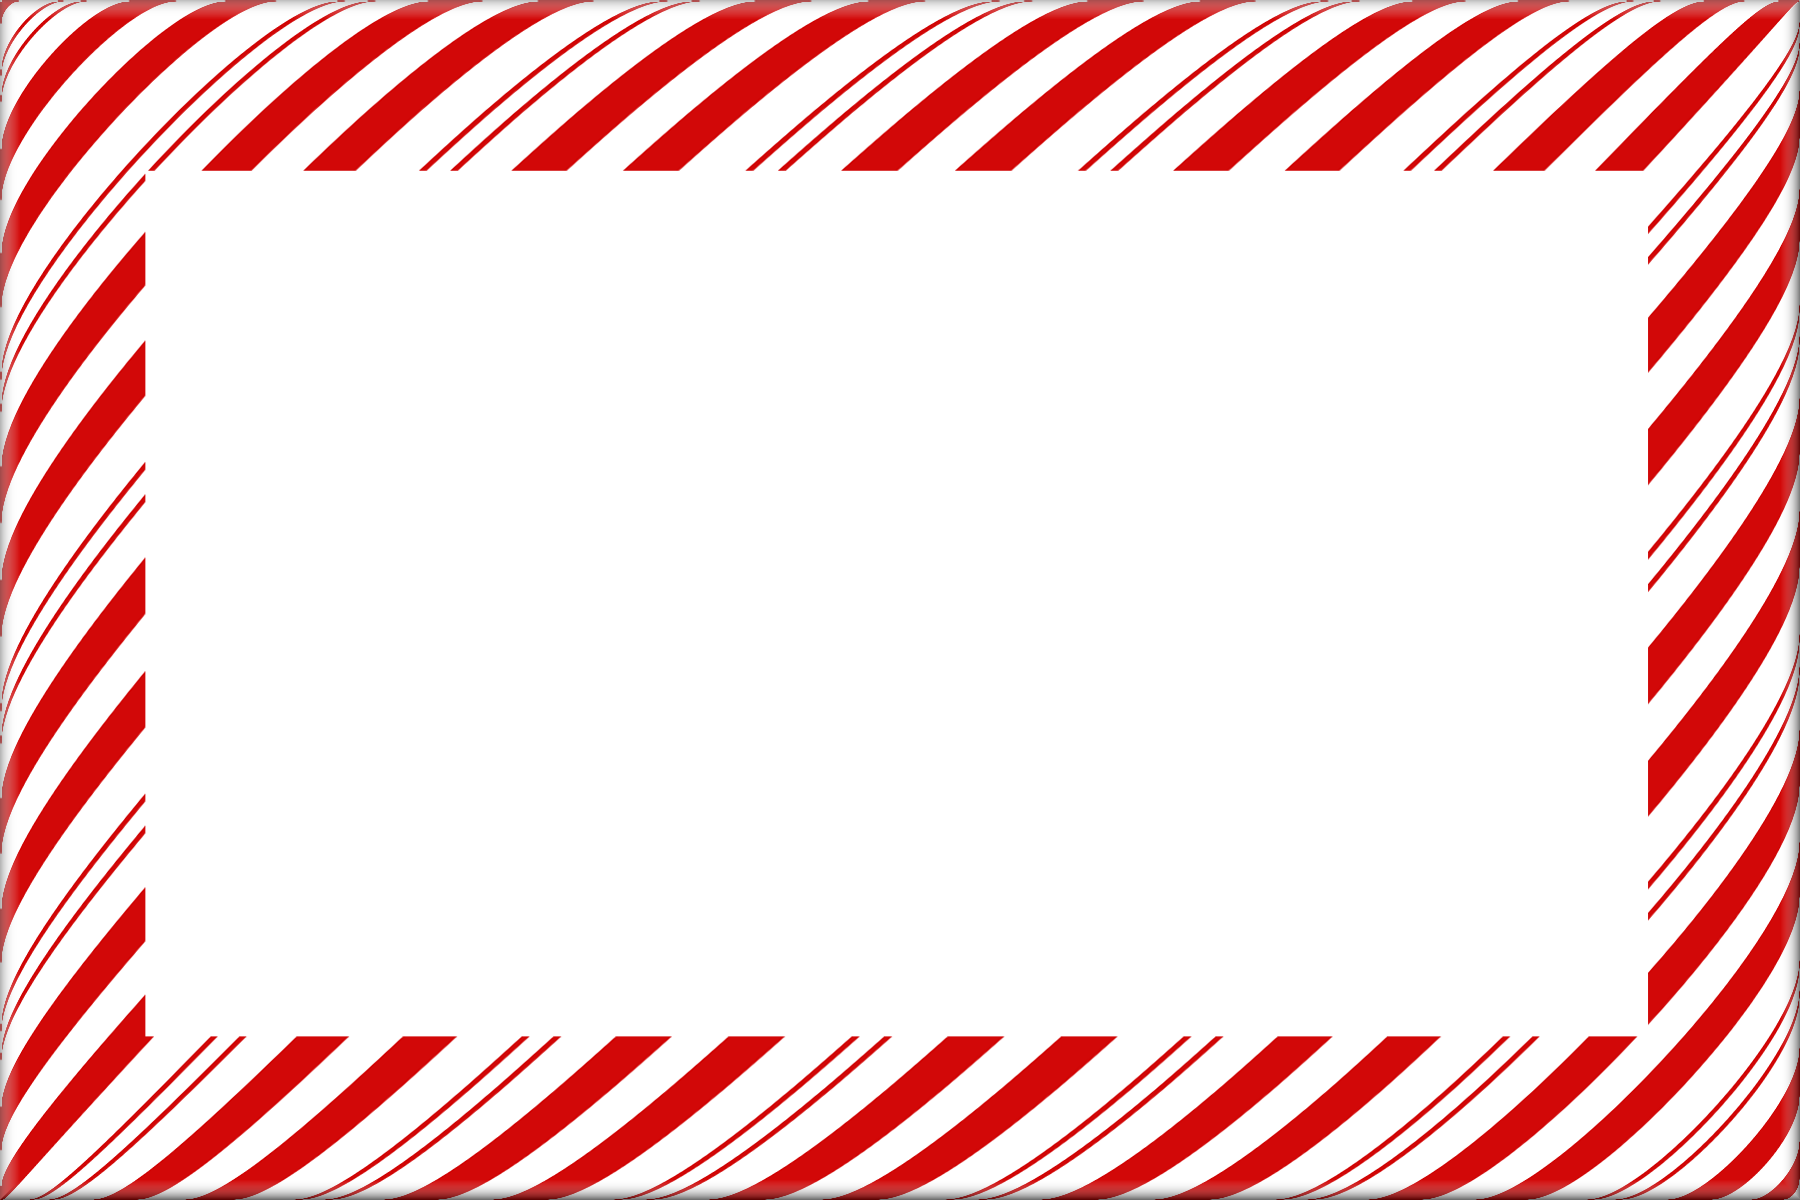 Cross clipart border image black and white library 28+ Collection of Candy Cane Clipart Border | High quality, free ... image black and white library